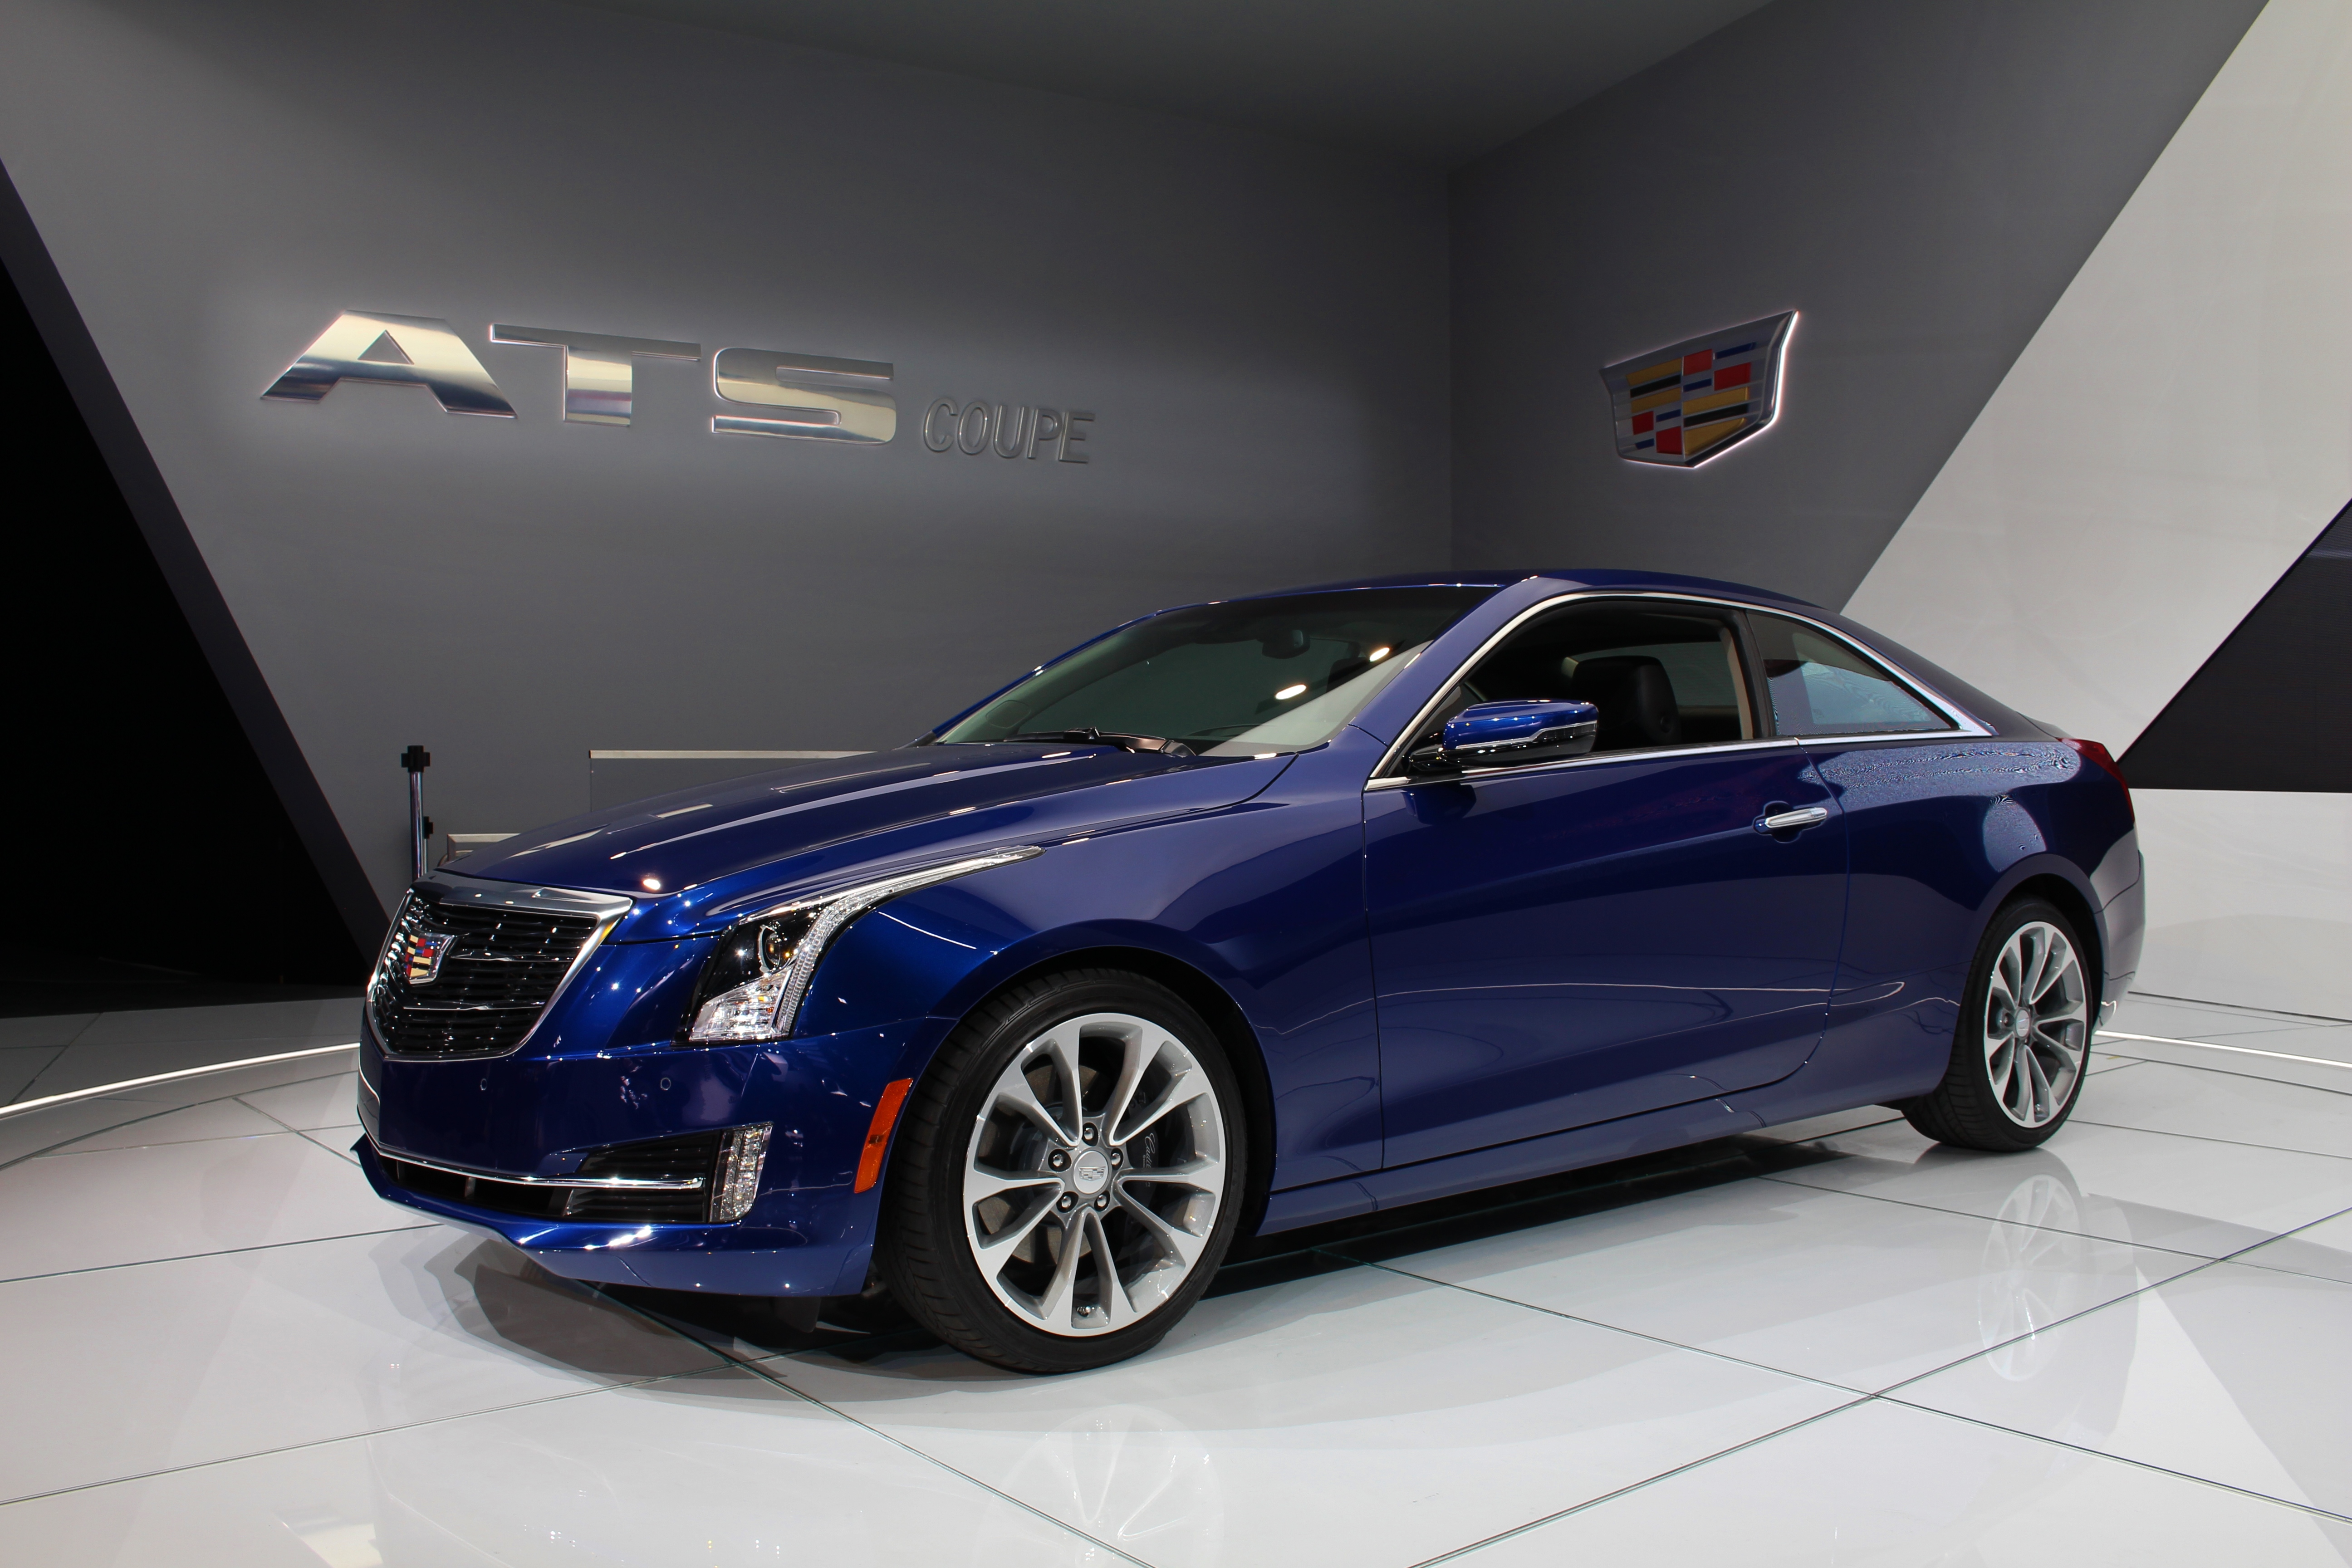 2013 Cadillac Ats 2.0 L Turbo >> Used 2016 Cadillac Ats 2 0l Turbo Luxury Collection For Sale In North | Adanih